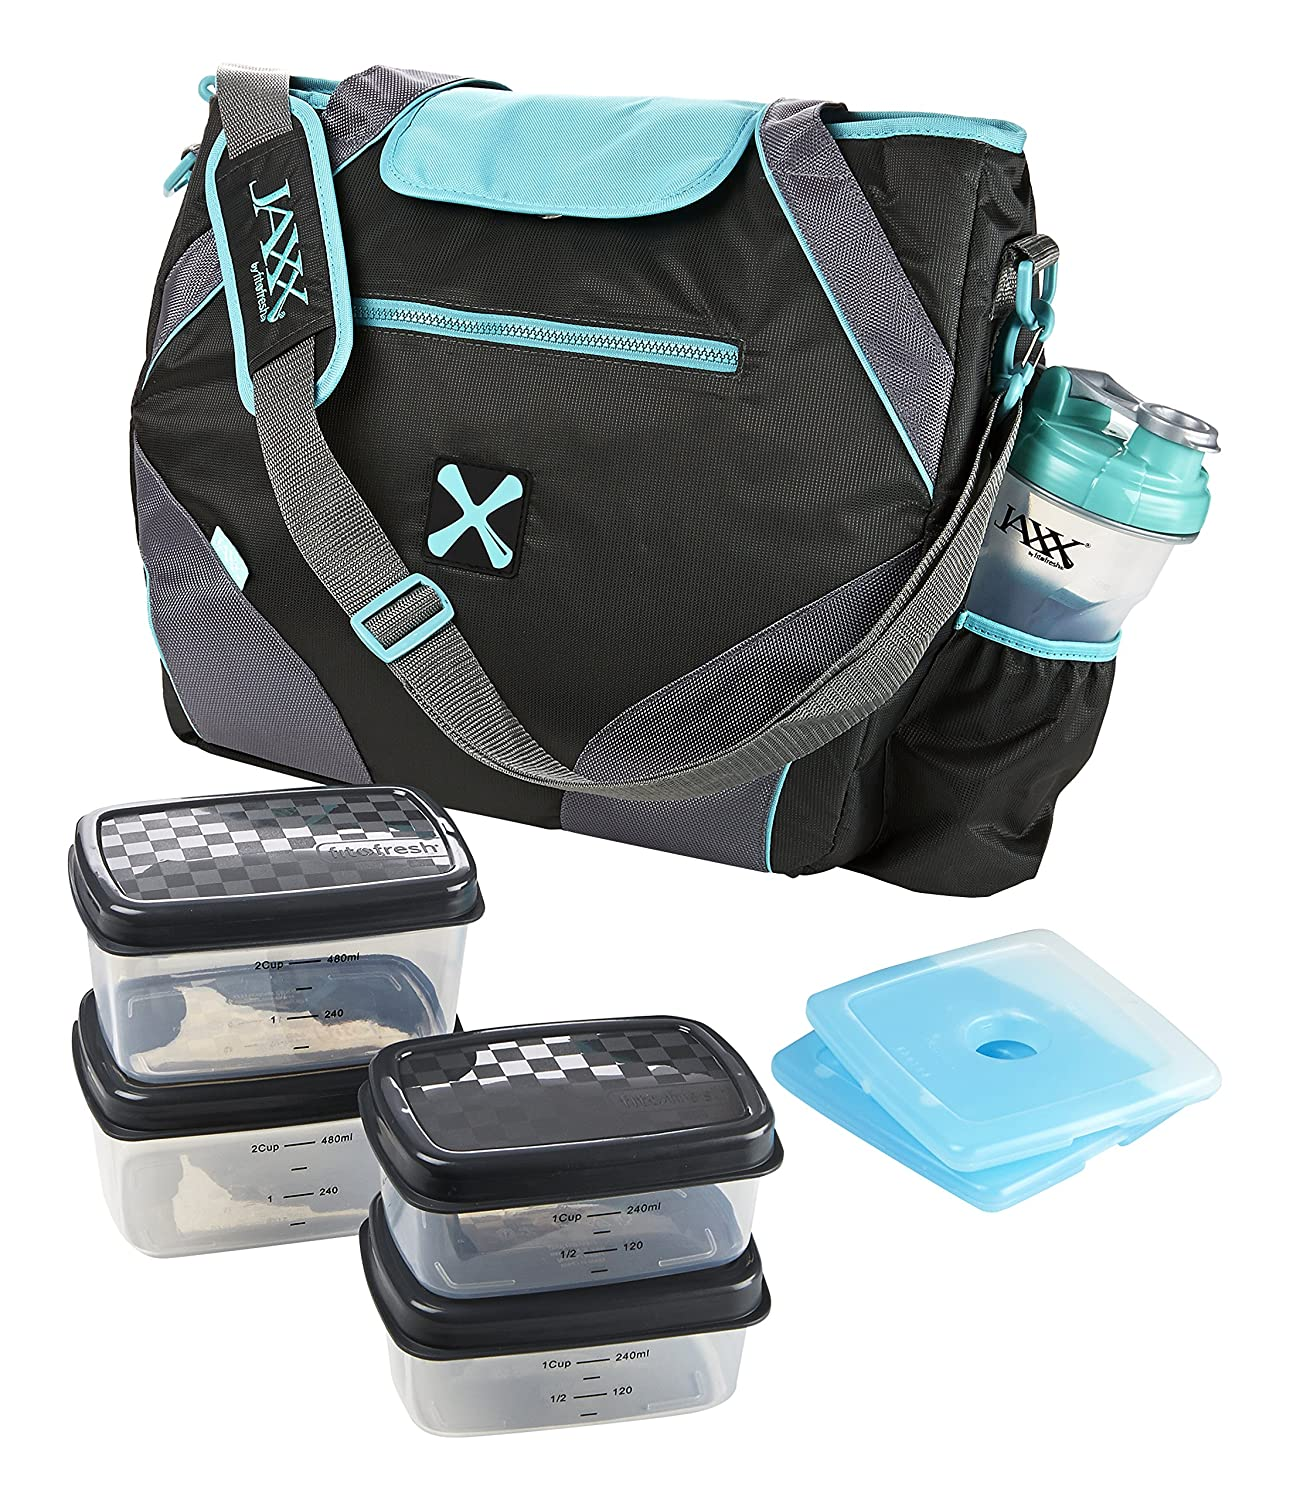 Amazon.com Fit u0026 Fresh Jaxx FitPak Ares Gym/Meal Prep Bag with Leakproof Portion Control Container Set and Ice Pack Purple Kitchen u0026 Dining  sc 1 st  Amazon.com & Amazon.com: Fit u0026 Fresh Jaxx FitPak Ares Gym/Meal Prep Bag with ...